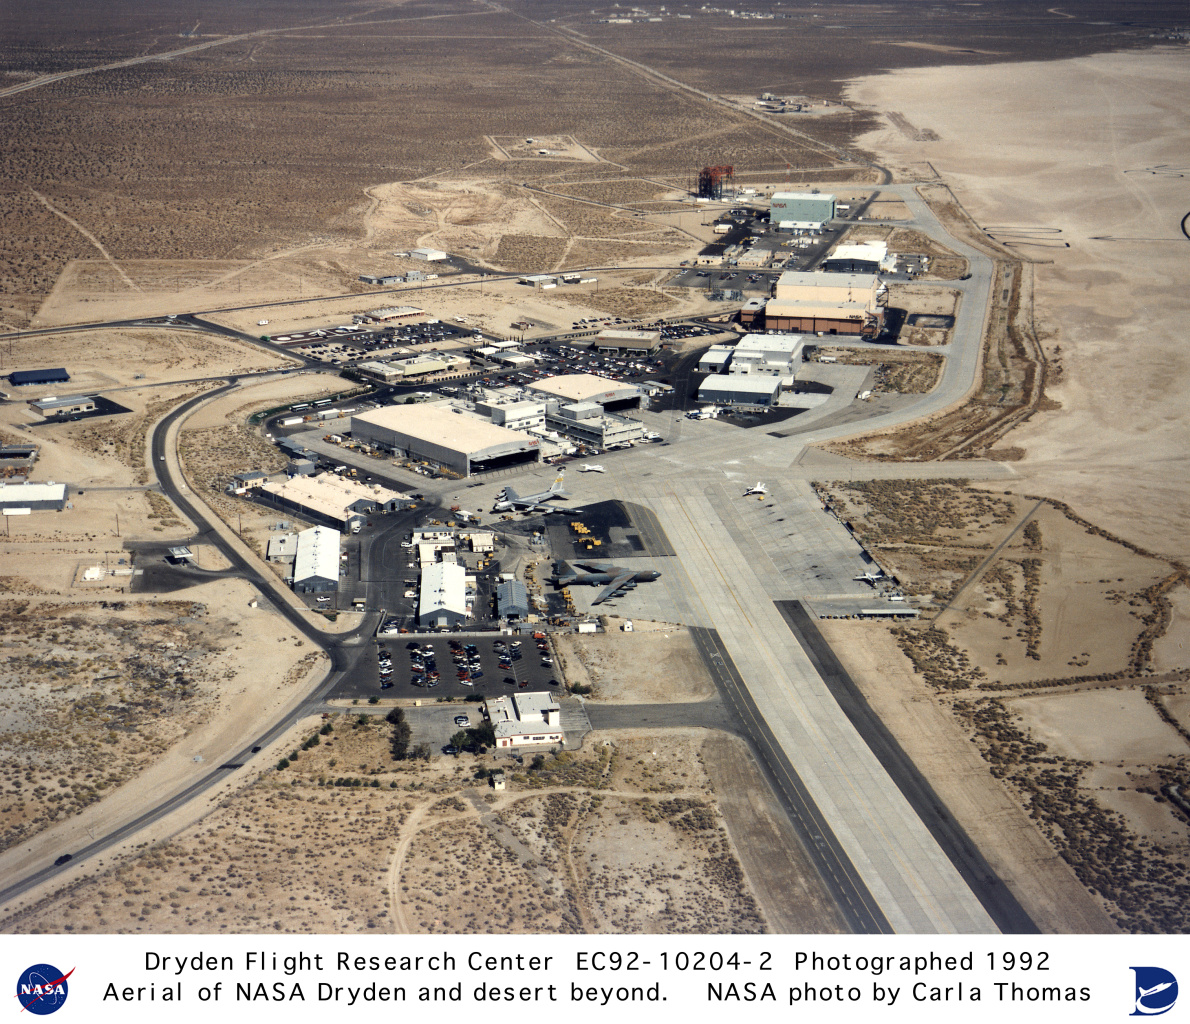 NASA Dryden Facilities Photo Collection